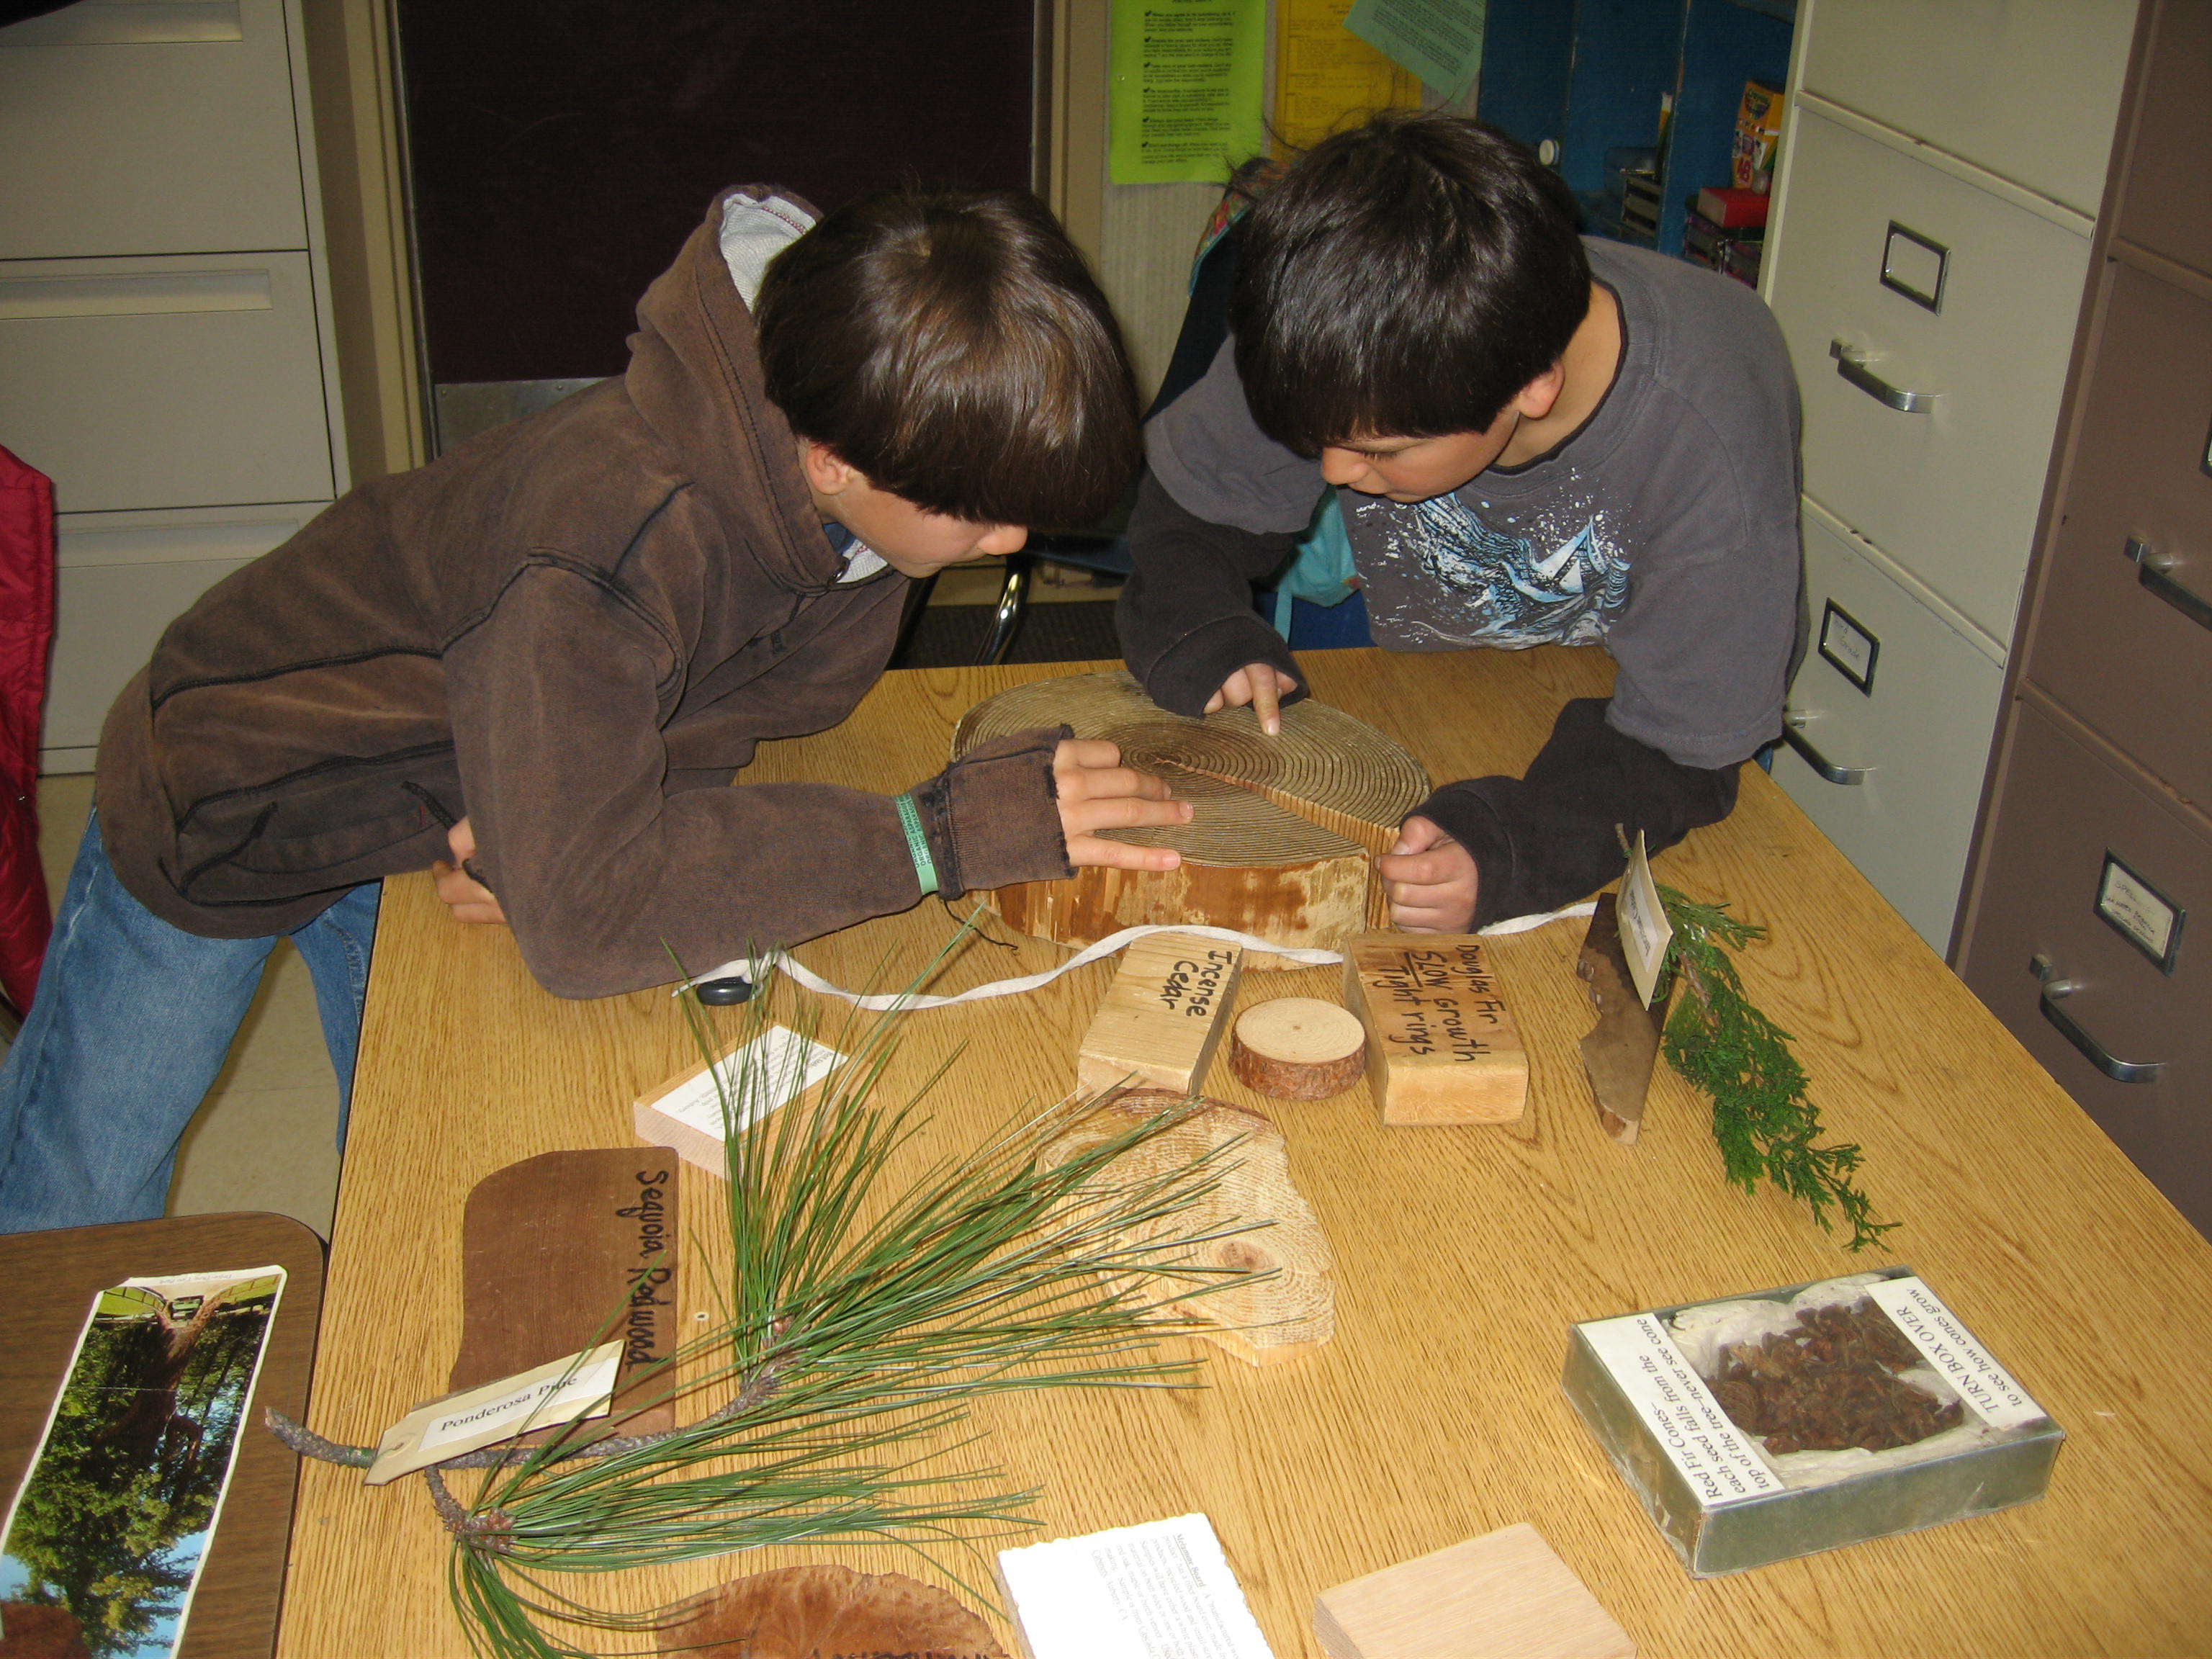 Two boys count tree rings during a Talk About Trees program at their school.